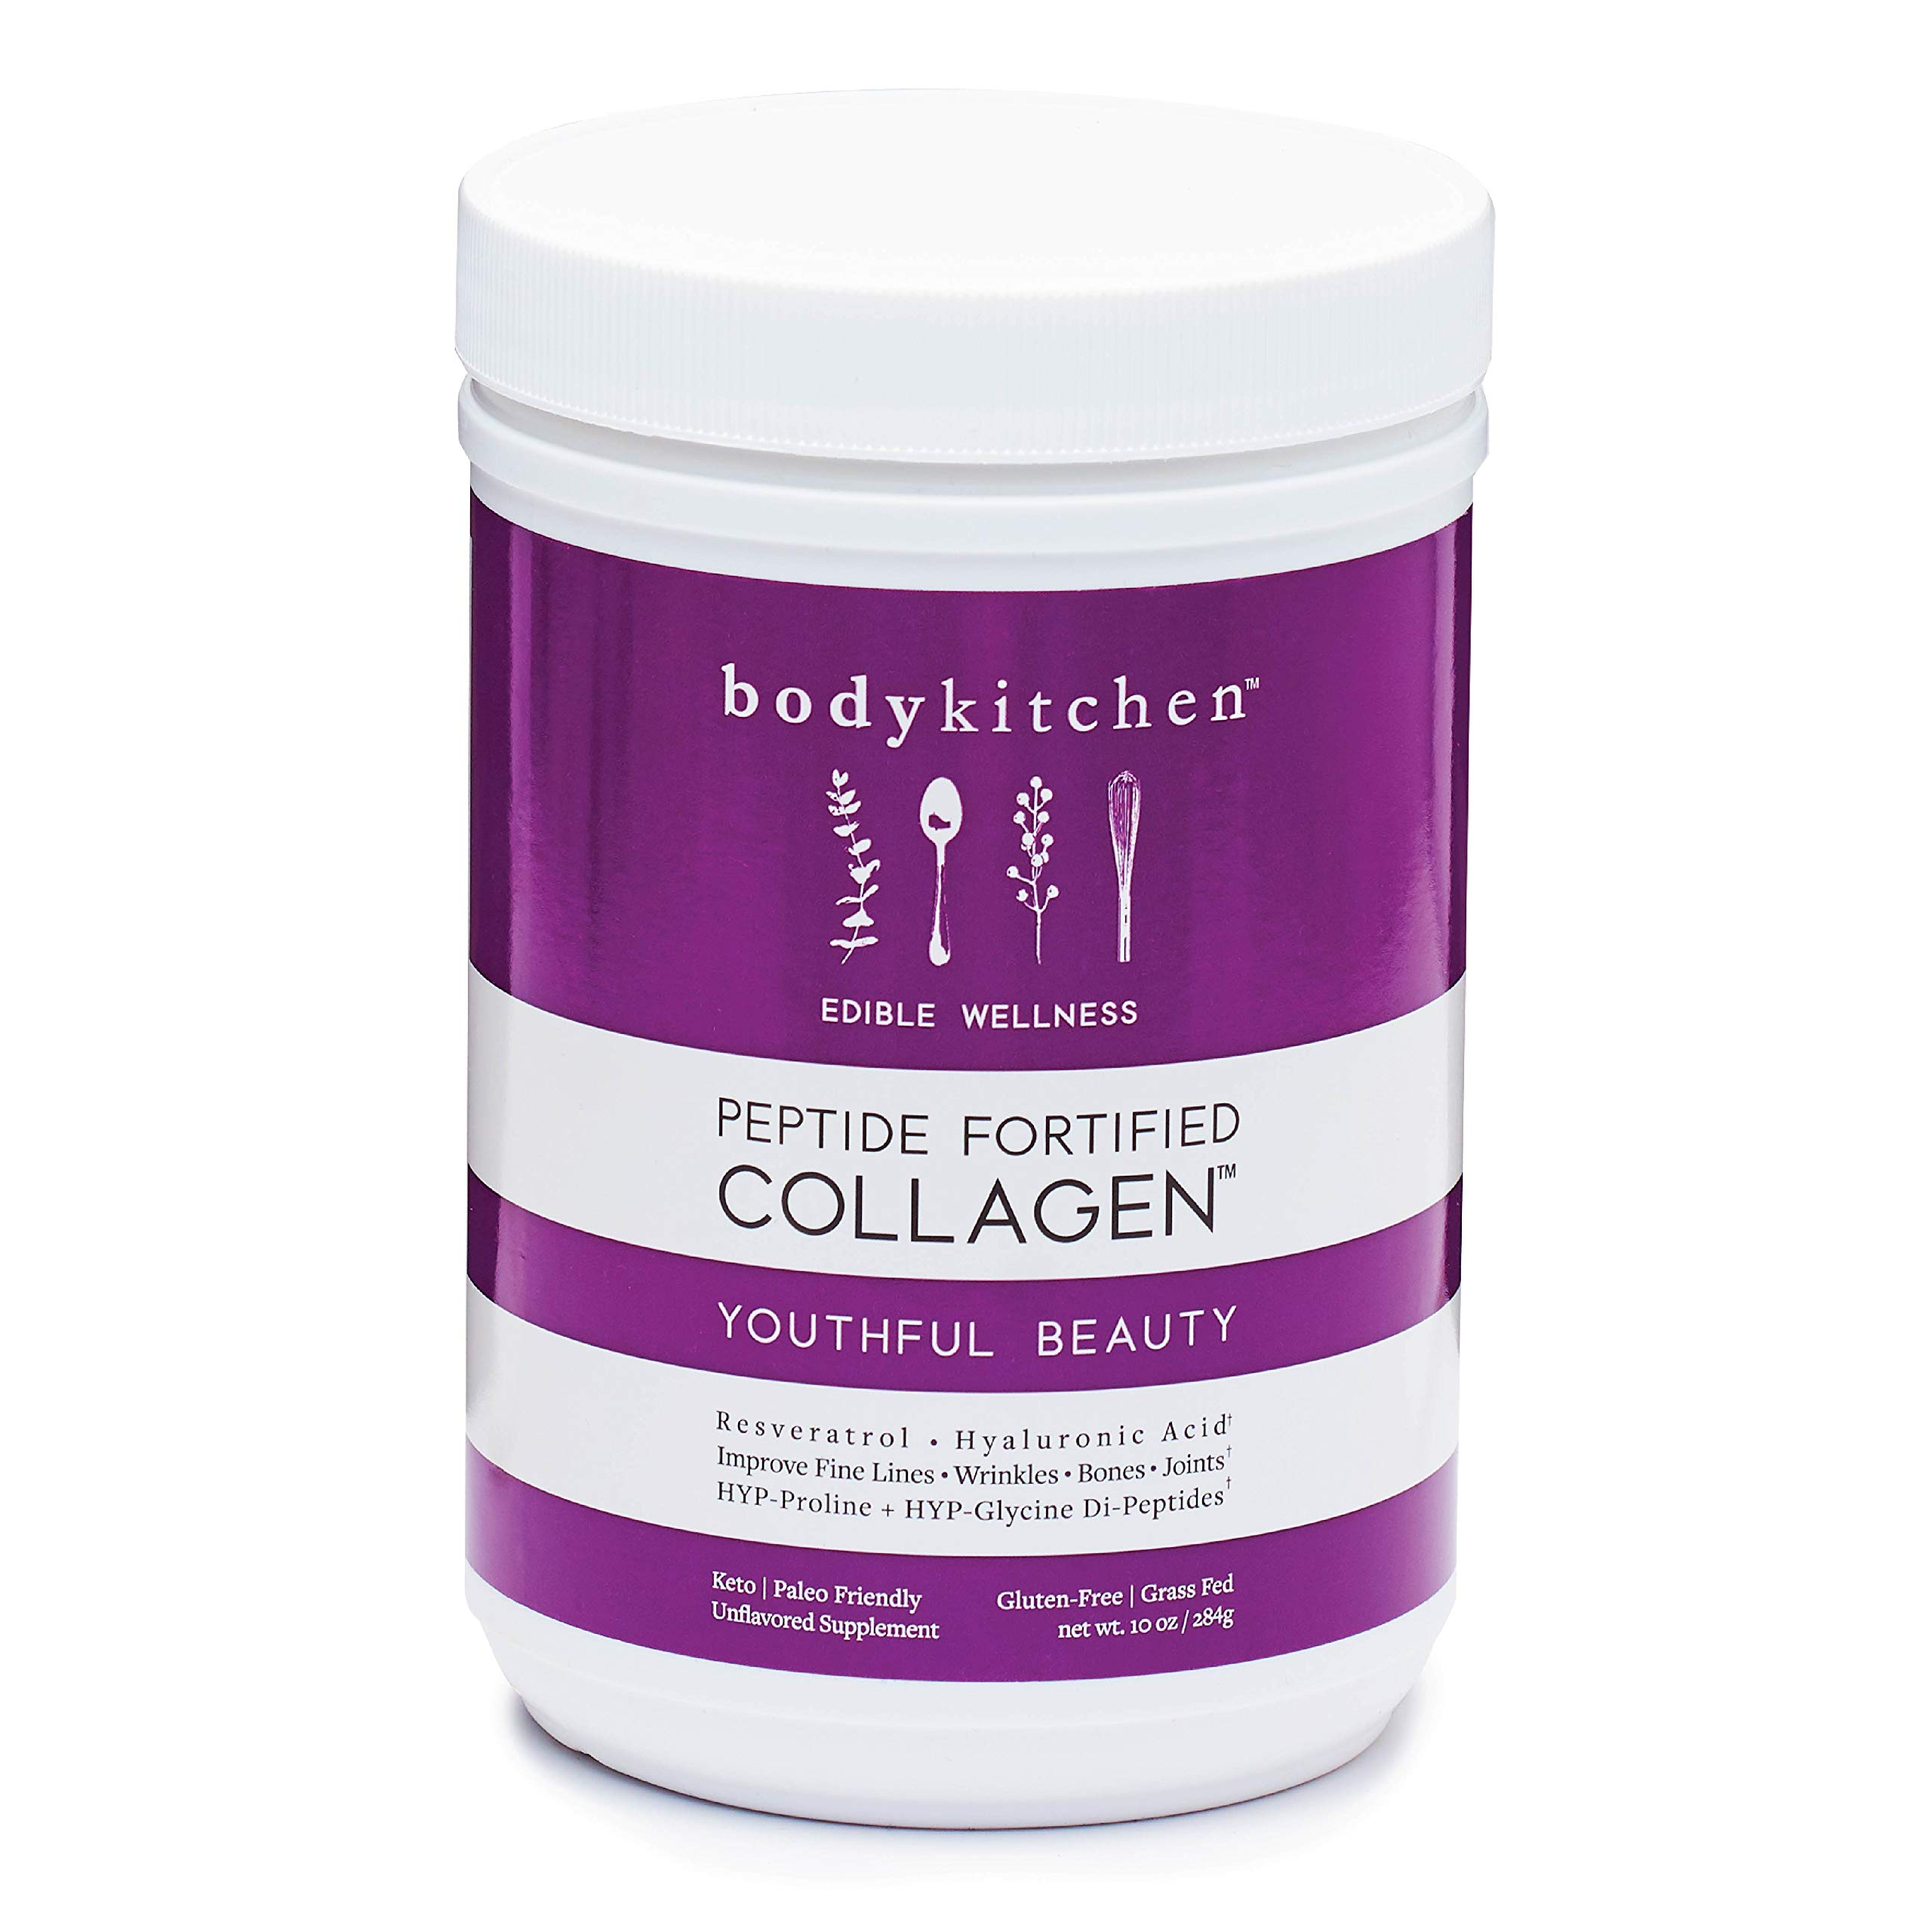 Body Kitchen - Youthful Beauty Collagen Powder - Grass-Fed Collagen + Resveratrol Powder and Hyaluronic Acid - Anti-Aging, Hair Skin Nail, and Antioxidant Support, 10oz